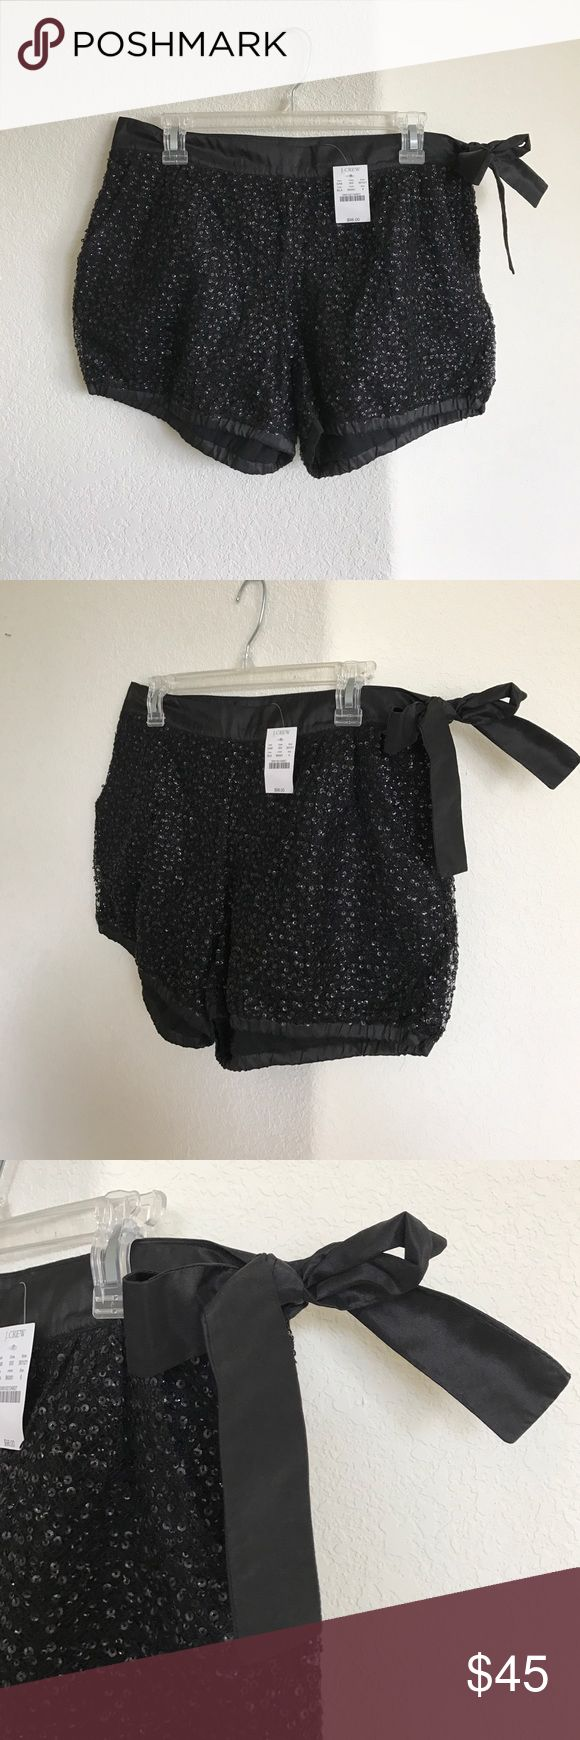 J Crew Black Sequin Shorts A super sweet pair of NWT black Sequin shorts from J Crew Collection. These have a 100% silk trim at the waist and the bottom of pant leg. There's also a very chic looking bow to tie at the side. These are a size 6 but seem to run a bit larger in the waist than is typical for J Crew. J. Crew Shorts